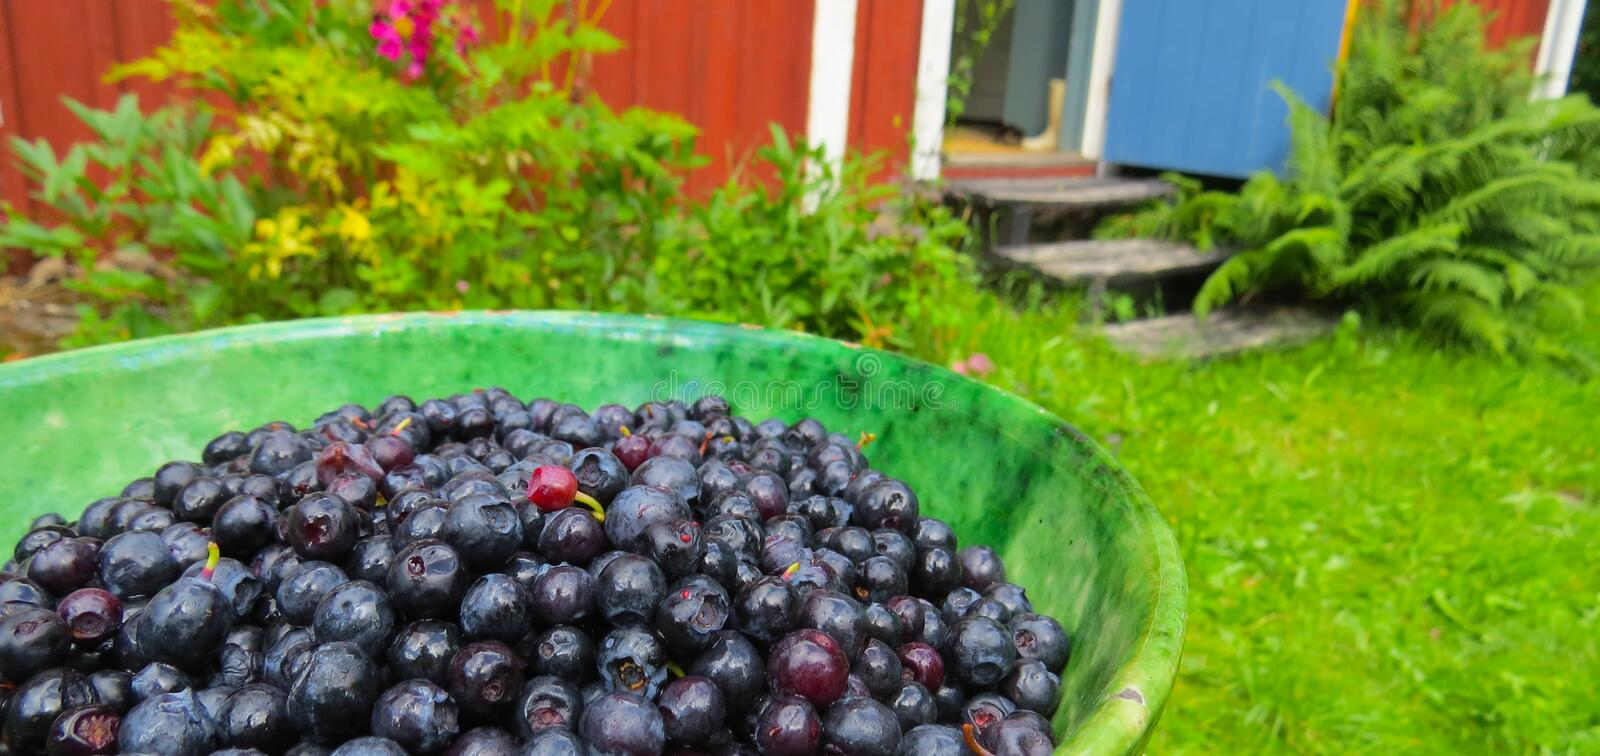 Blueberries in a bowl. Sweden. stock photo